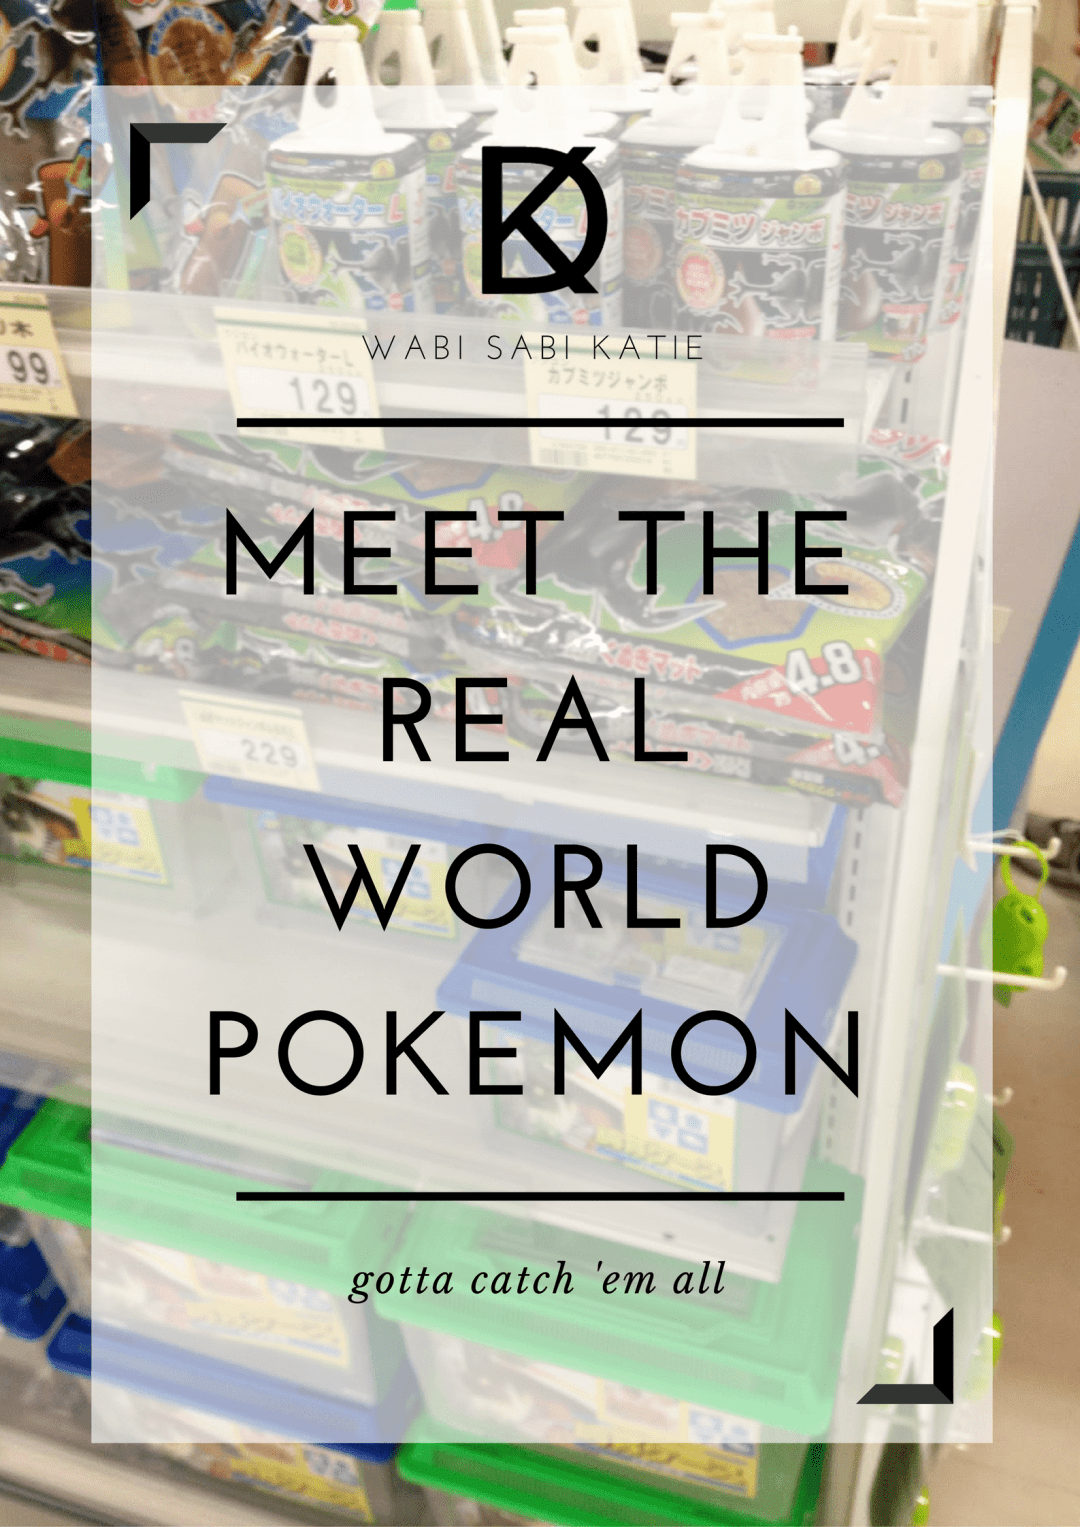 Real World Pokemon in Japan